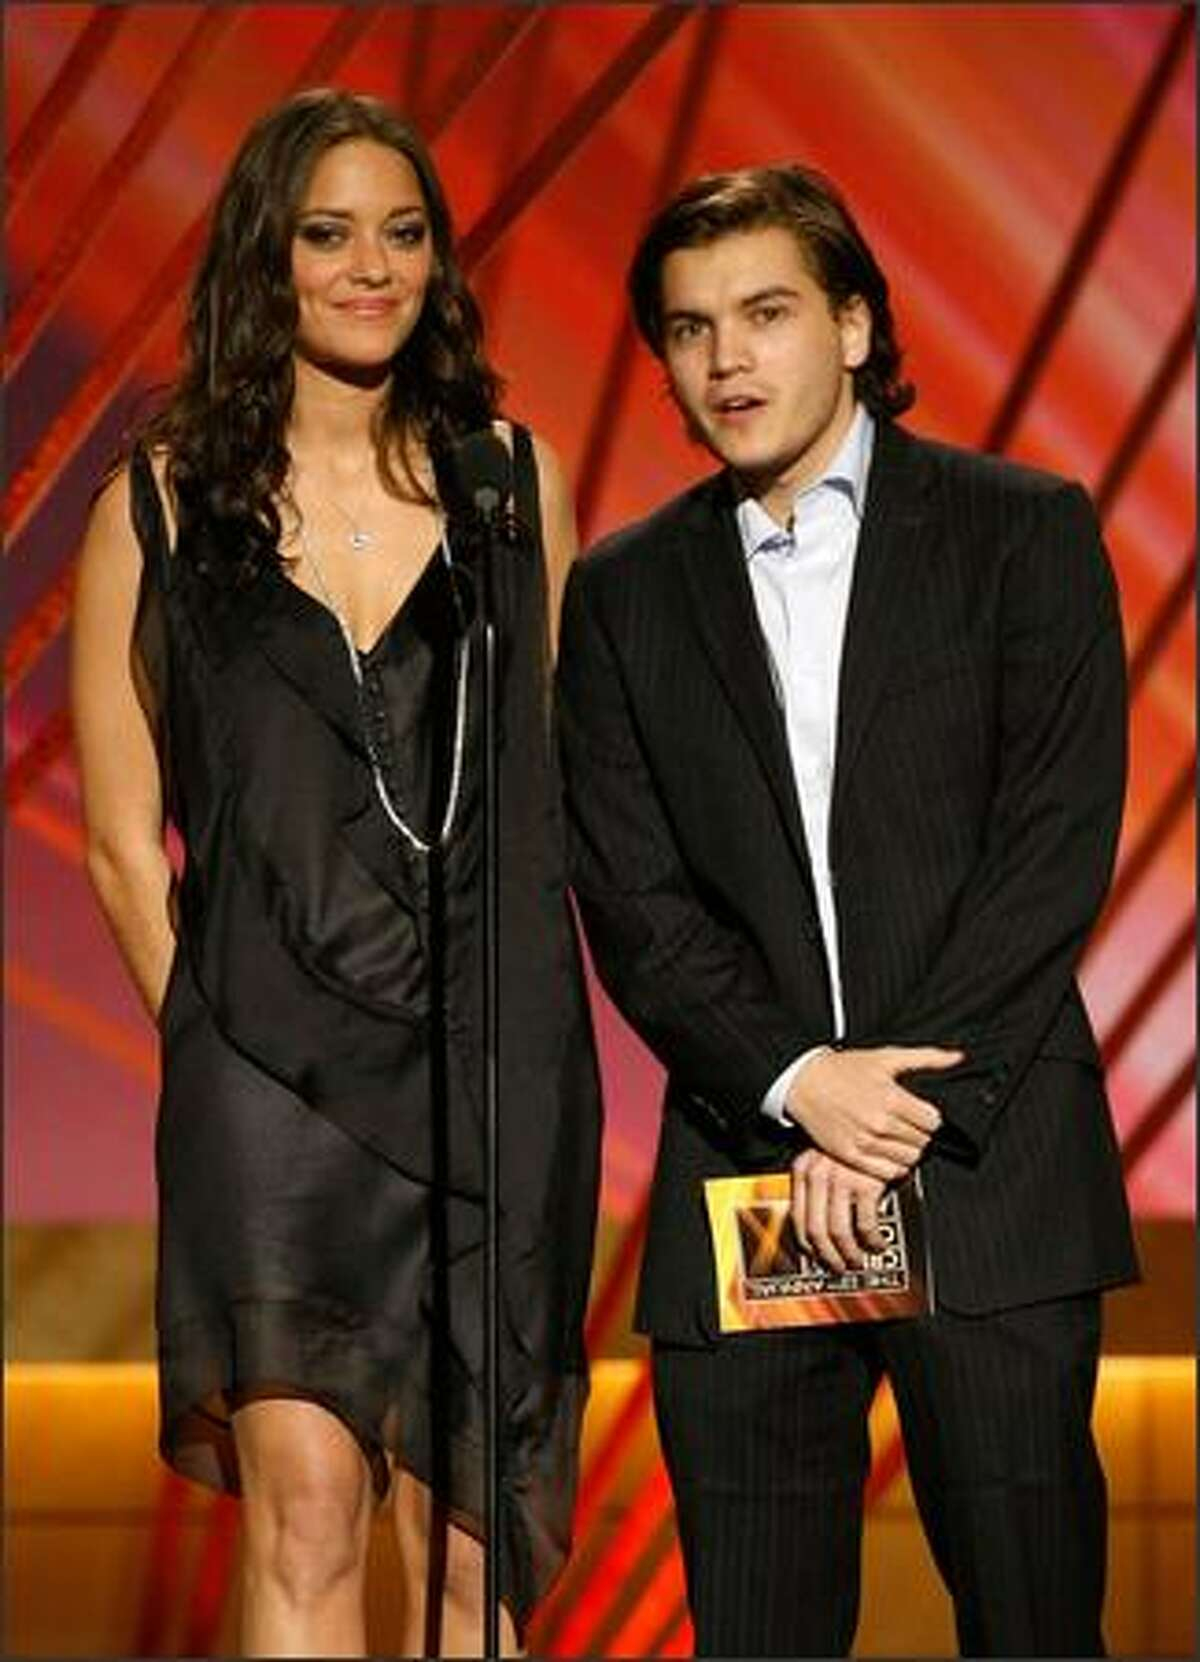 Presenters Marion Cotillard (L) and Emile Hirsch present the Acting Ensemble Award onstage during the 13th annual Critics' Choice Awards held at the Santa Monica Civic Auditorium on Monday in Santa Monica, Calif.